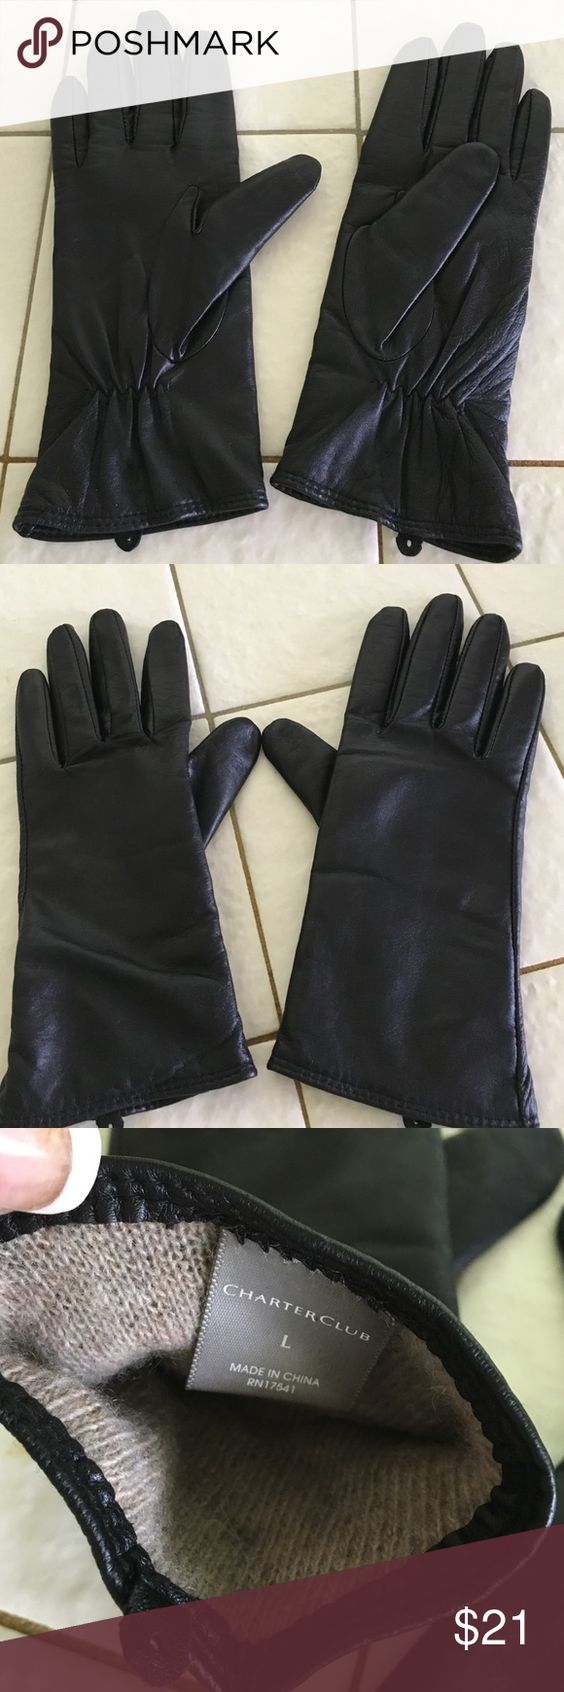 Ladies leather gloves wool lined - Charter Club Black 100 Leather Gloves Wool Lining Amazing Mint Condition Pair Of Butter